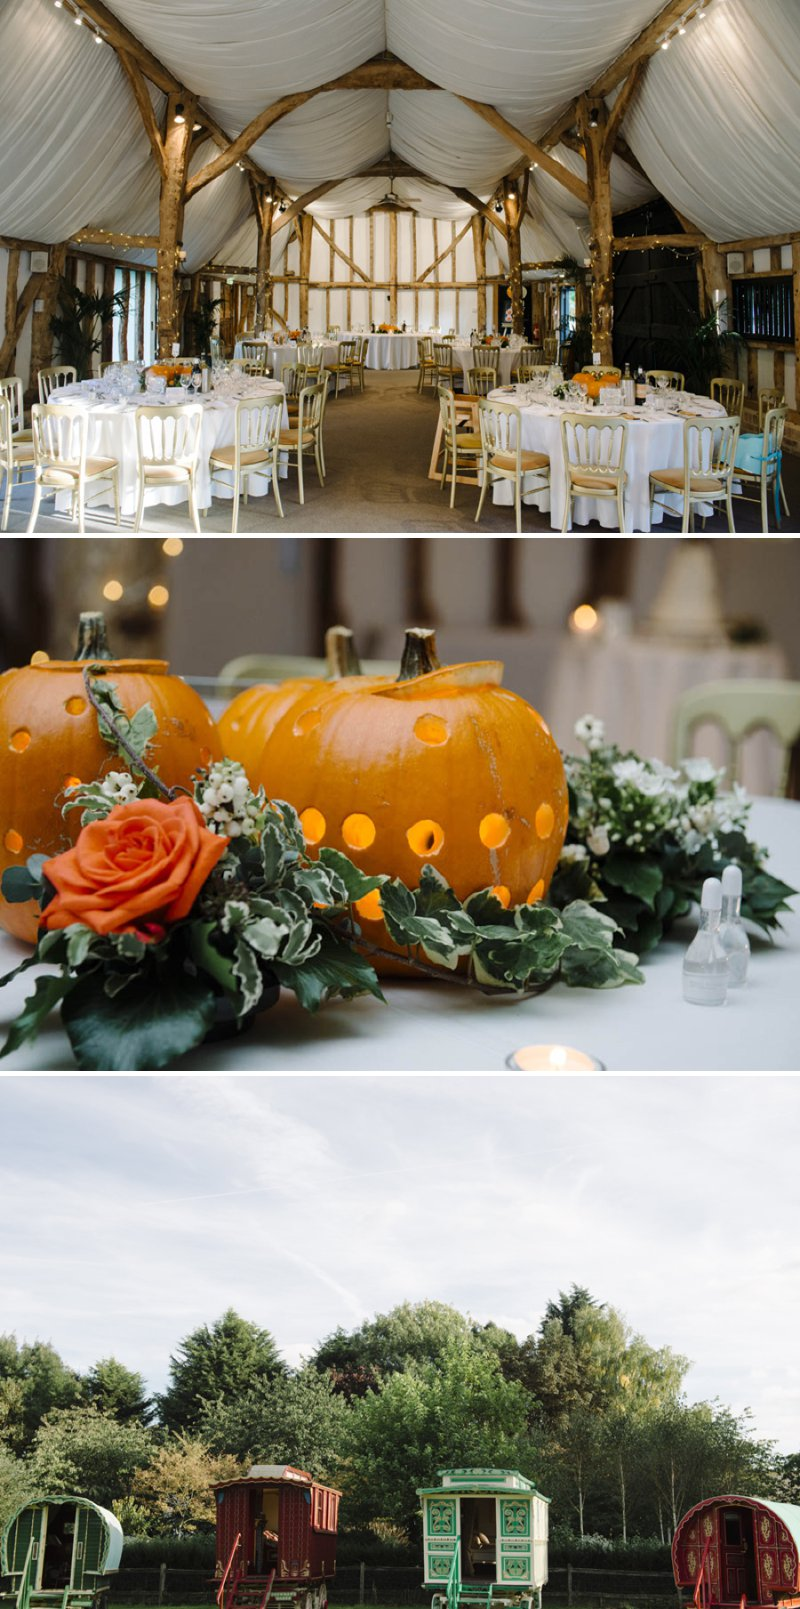 Autumnal Farm Wedding At South Farm In Cambridgeshire With Bride In Mermaid Style Lace Gown With Pumpkins For Table Centre Pieces 6